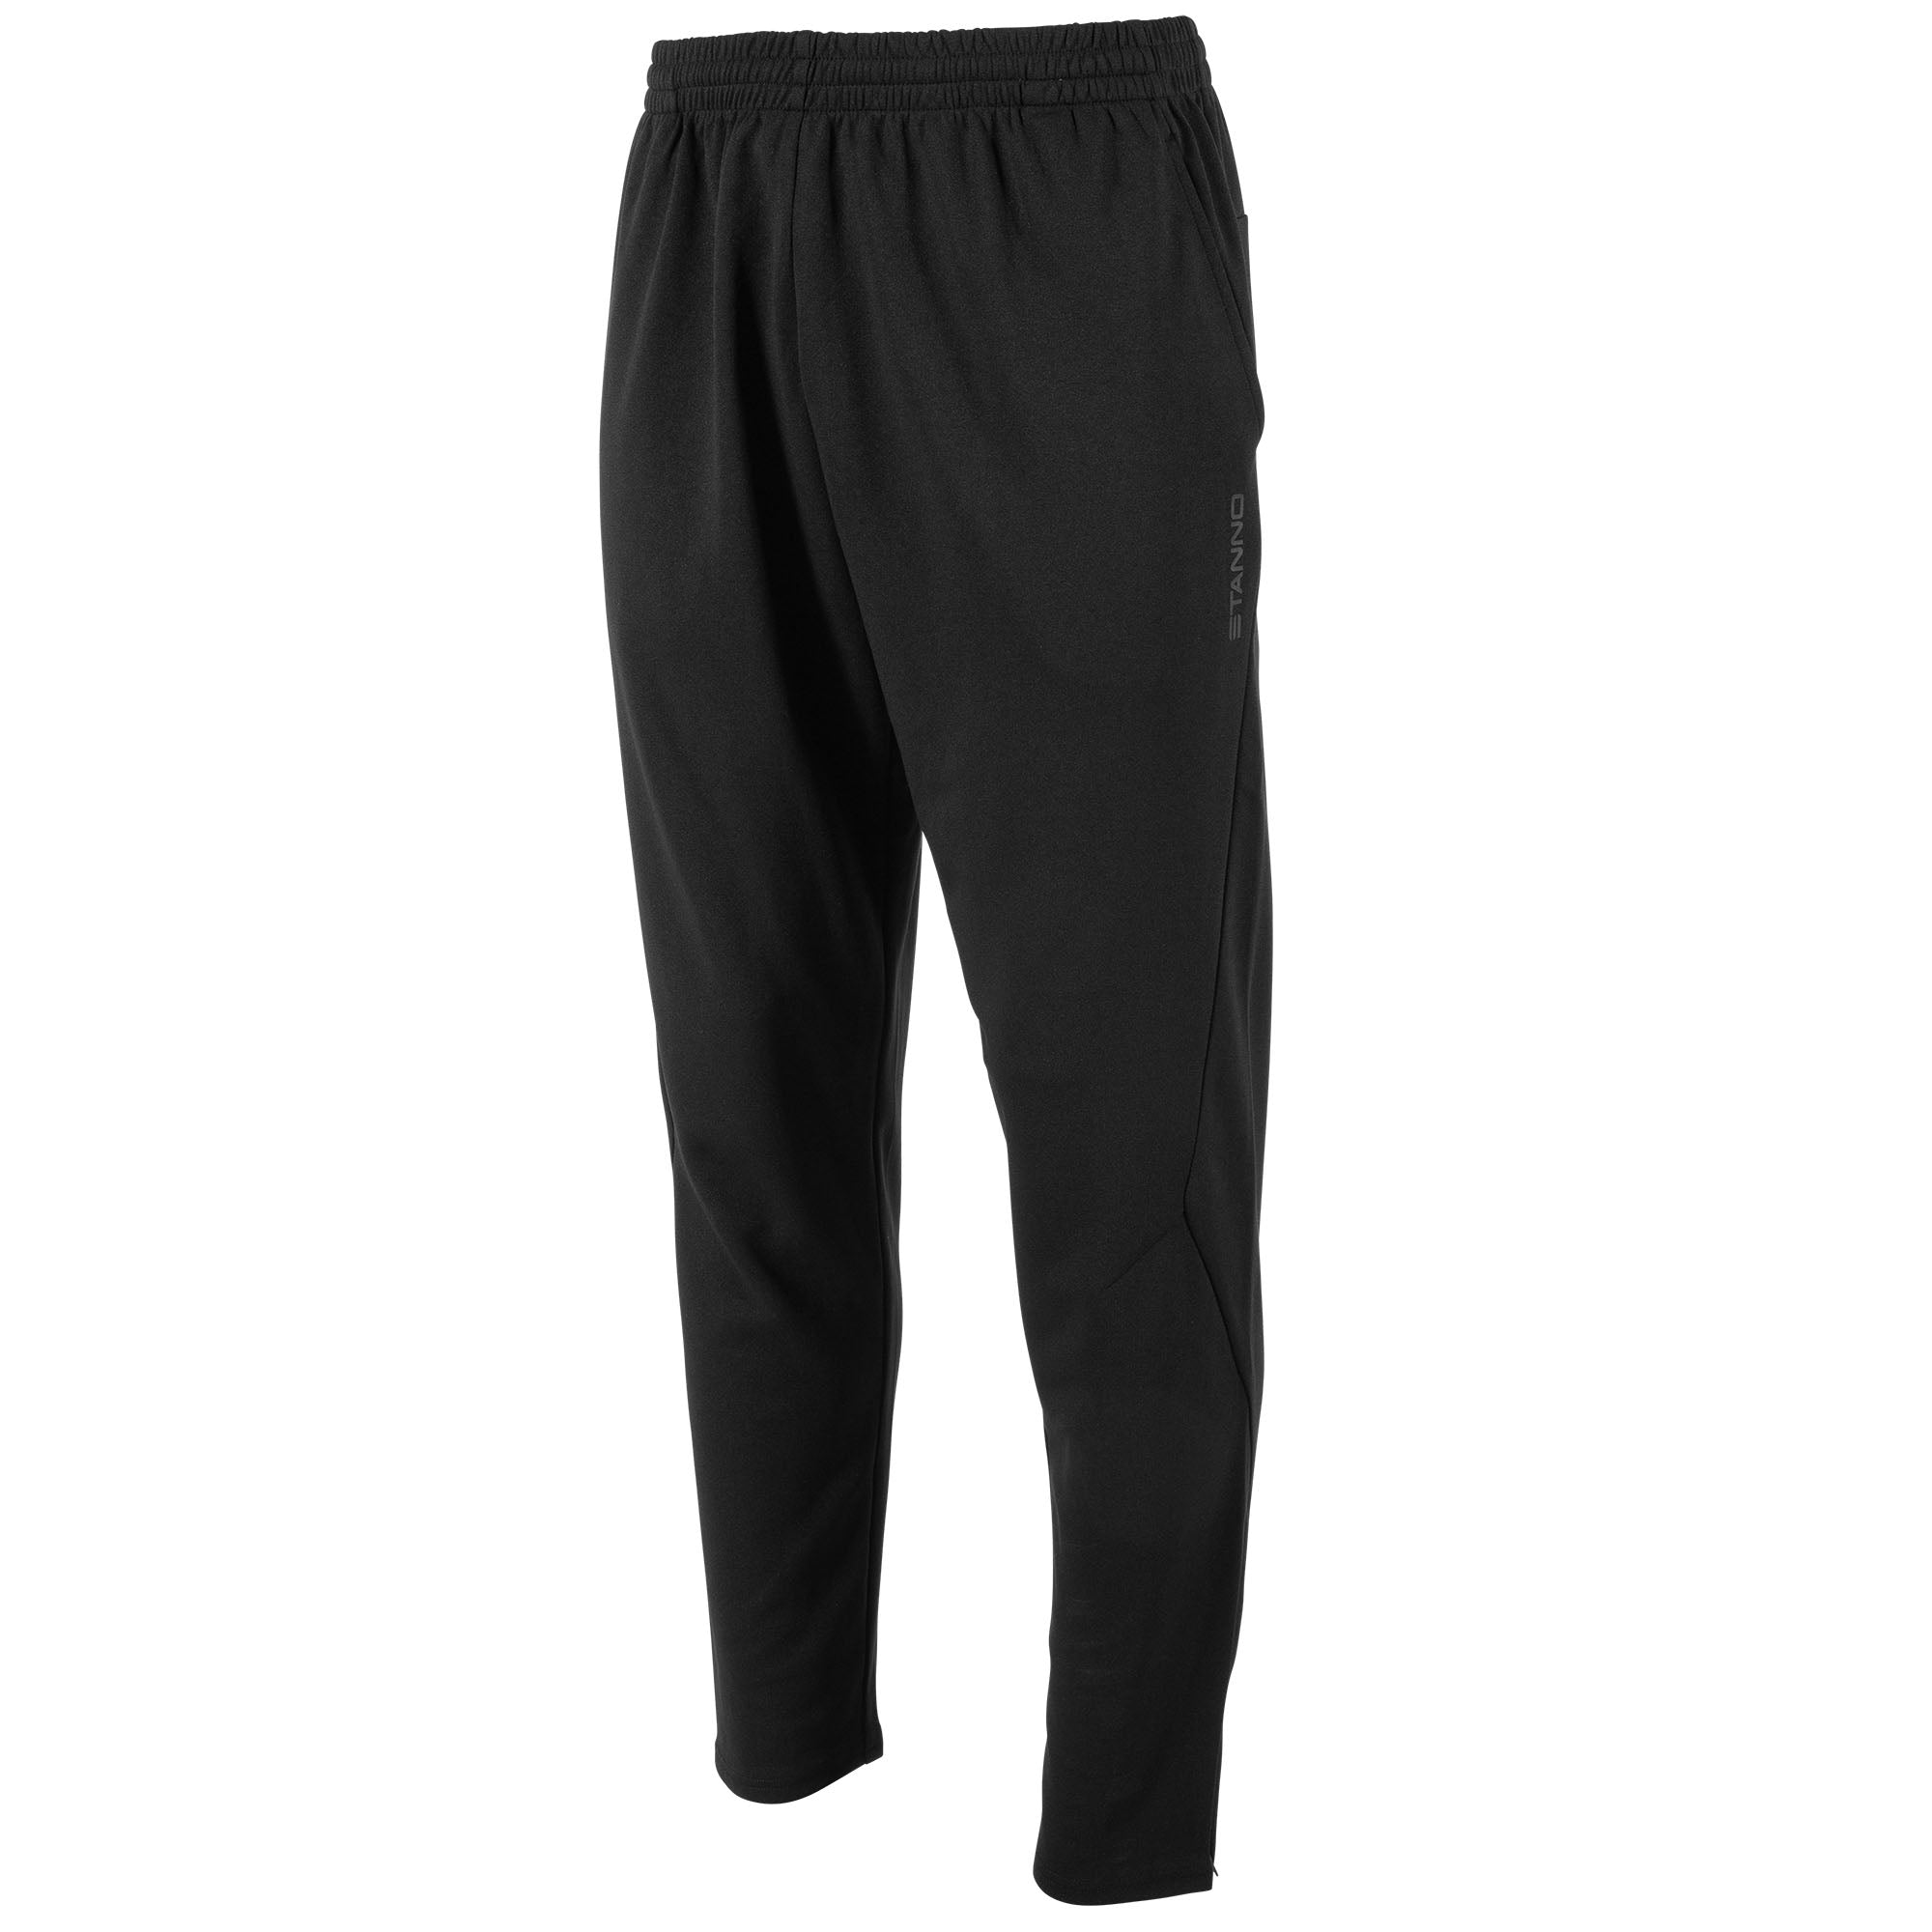 front view of black Stanno Functionals Training Pants with side pocket and Stanno text down left leg..